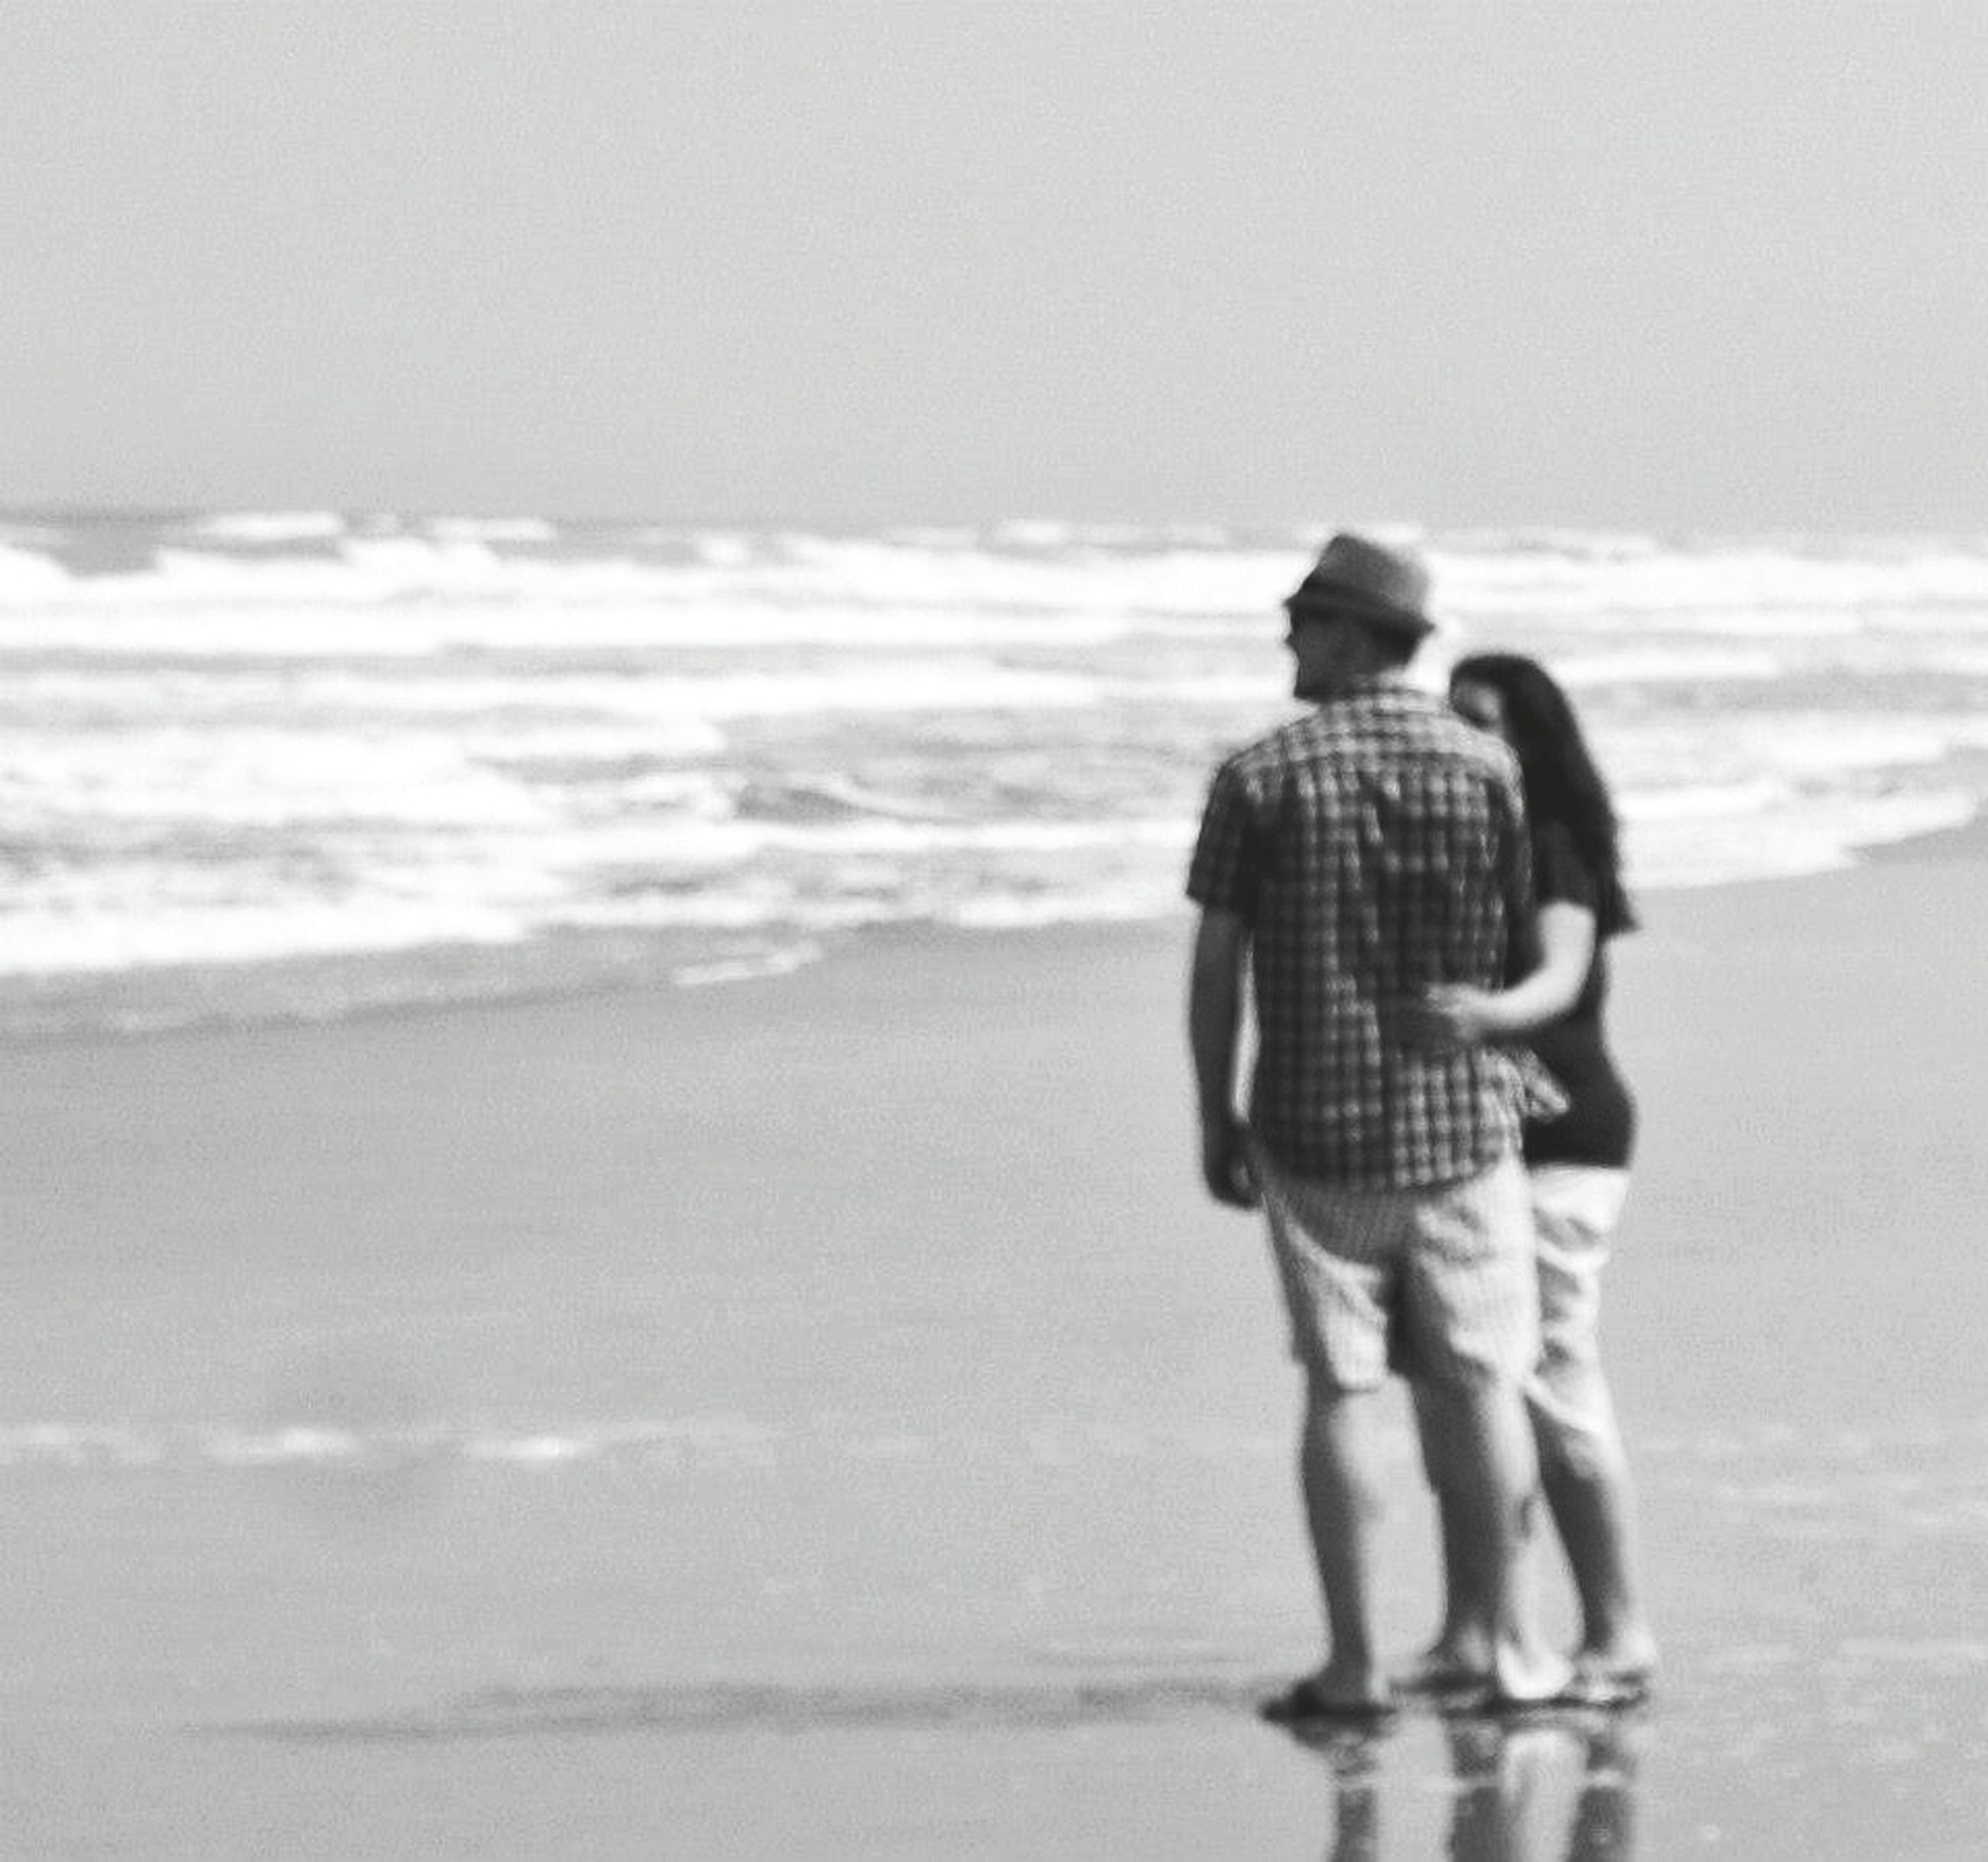 sea, horizon over water, rear view, lifestyles, beach, leisure activity, water, standing, full length, shore, casual clothing, childhood, three quarter length, sky, clear sky, copy space, boys, men